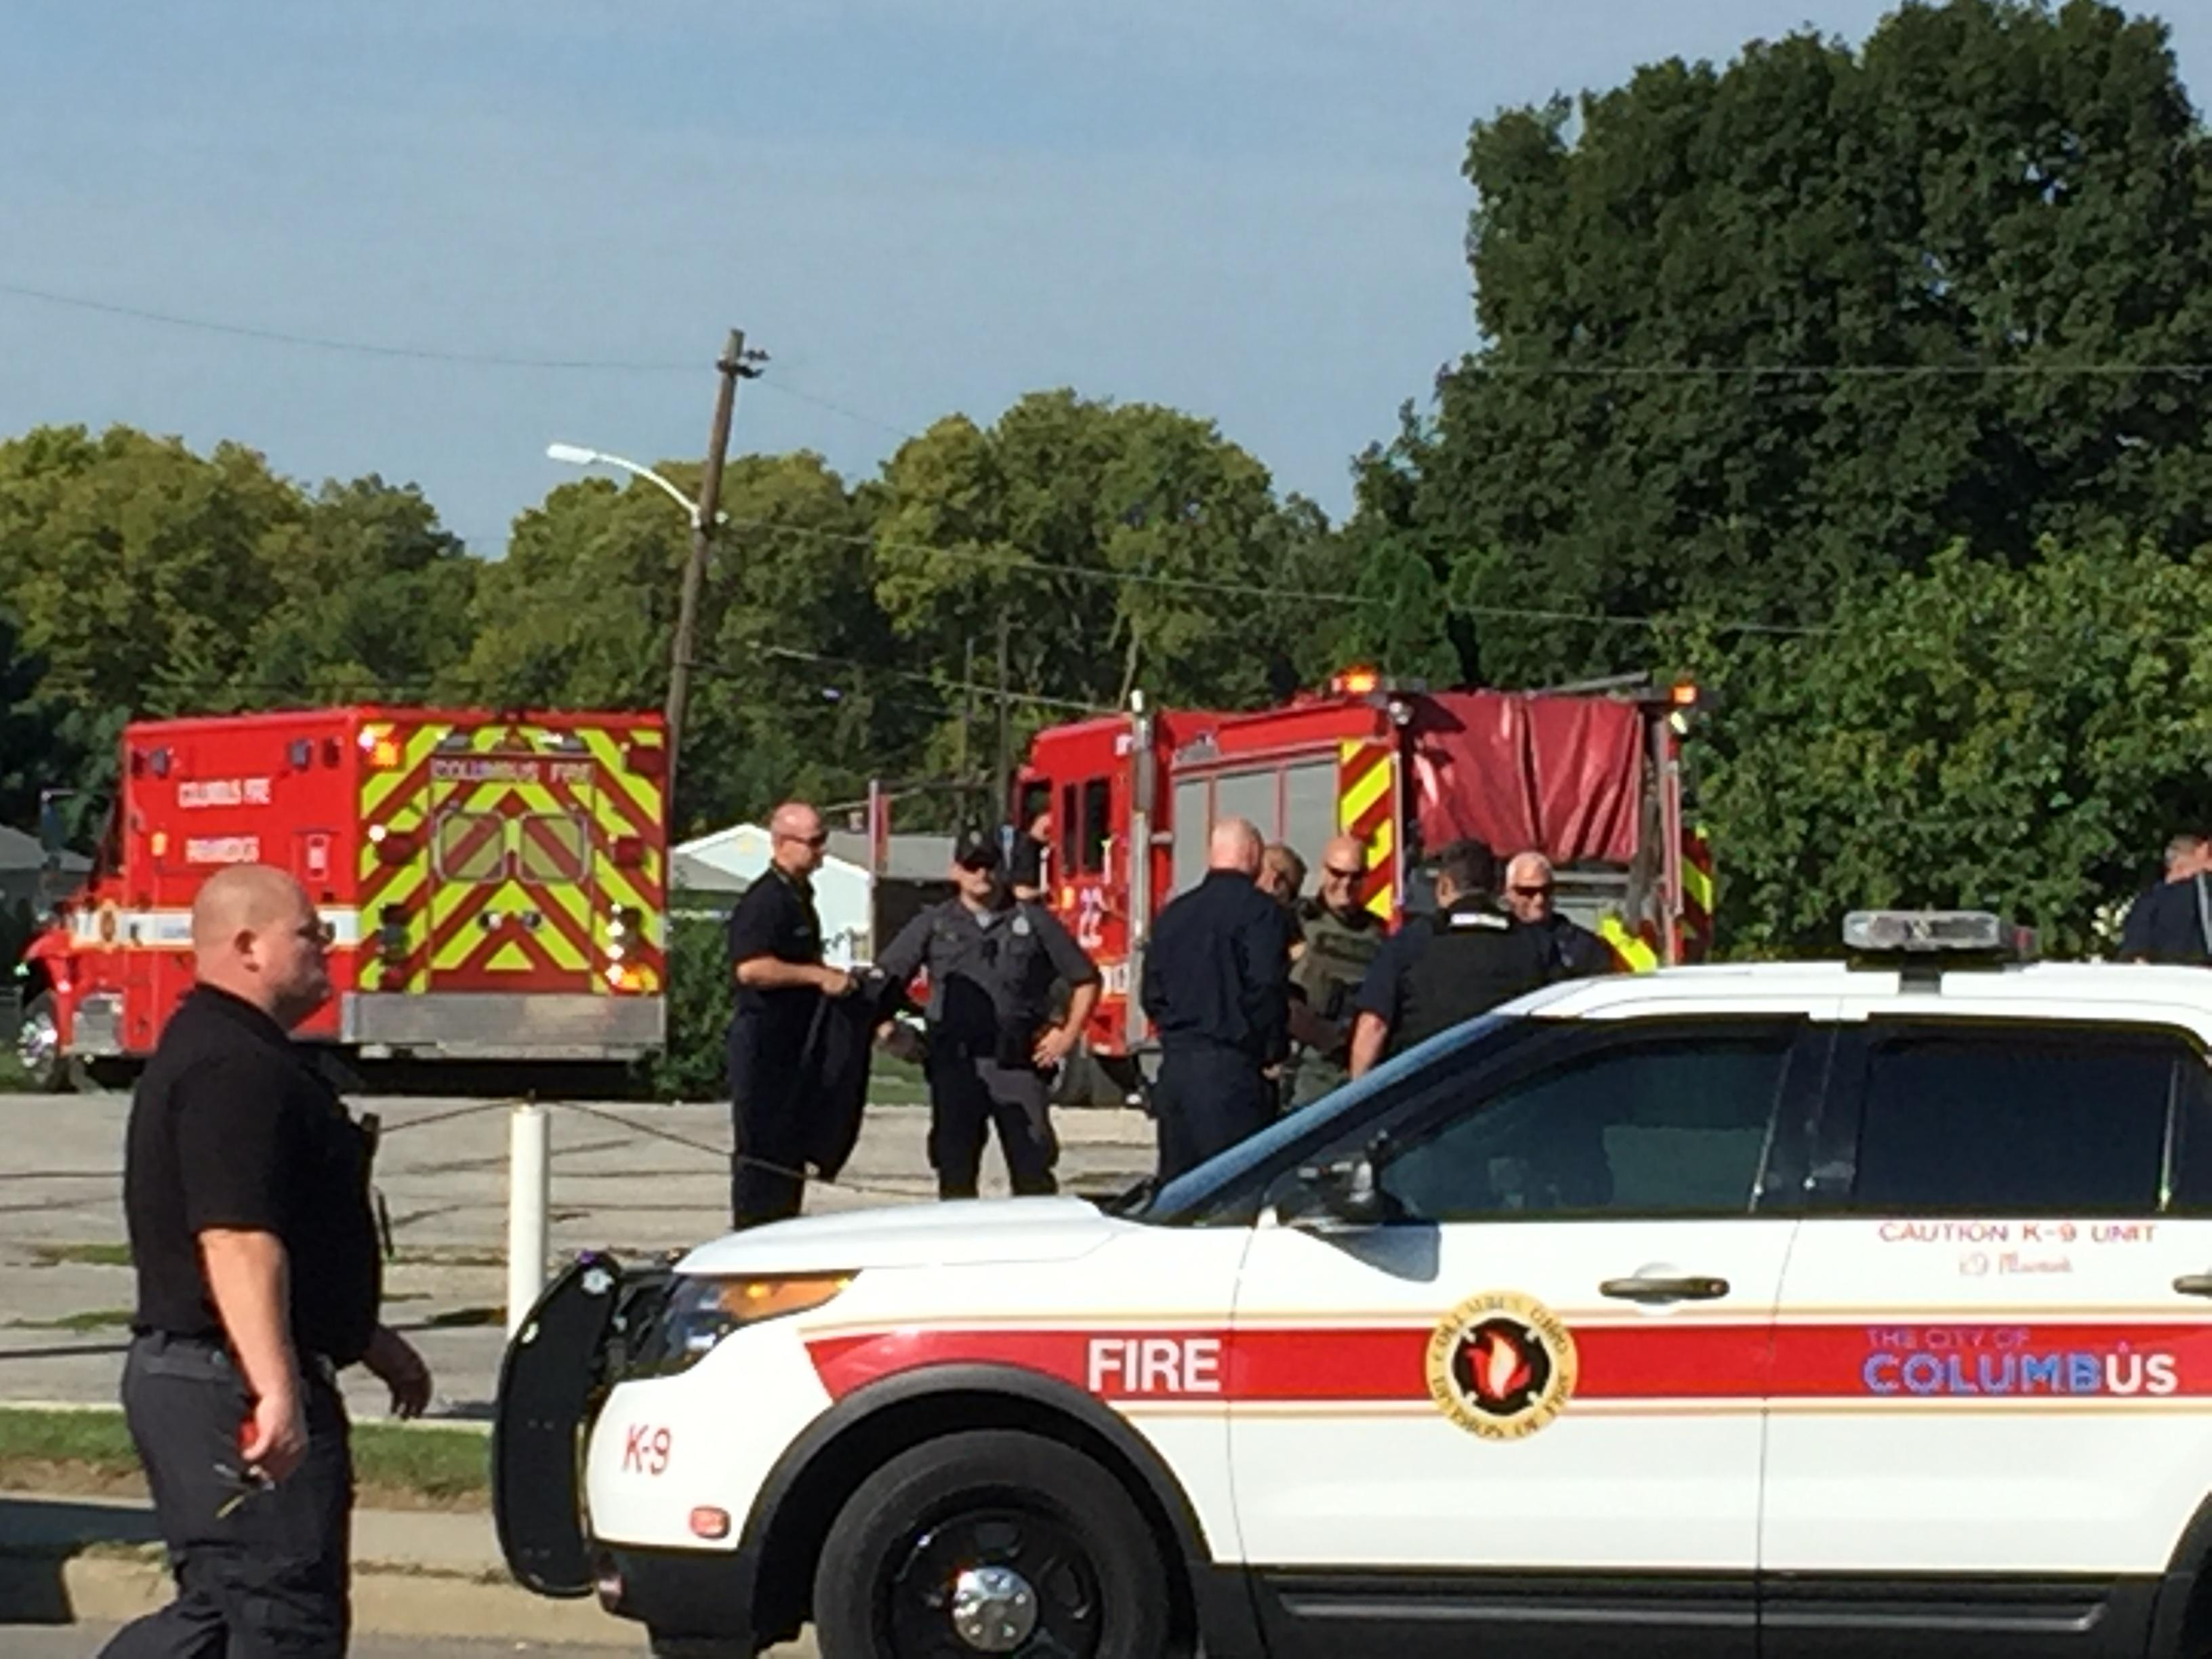 No one was injured, one person was arrested after report of active shooter at Columbus Scioto 6-12 school (WSYX/WTTE)